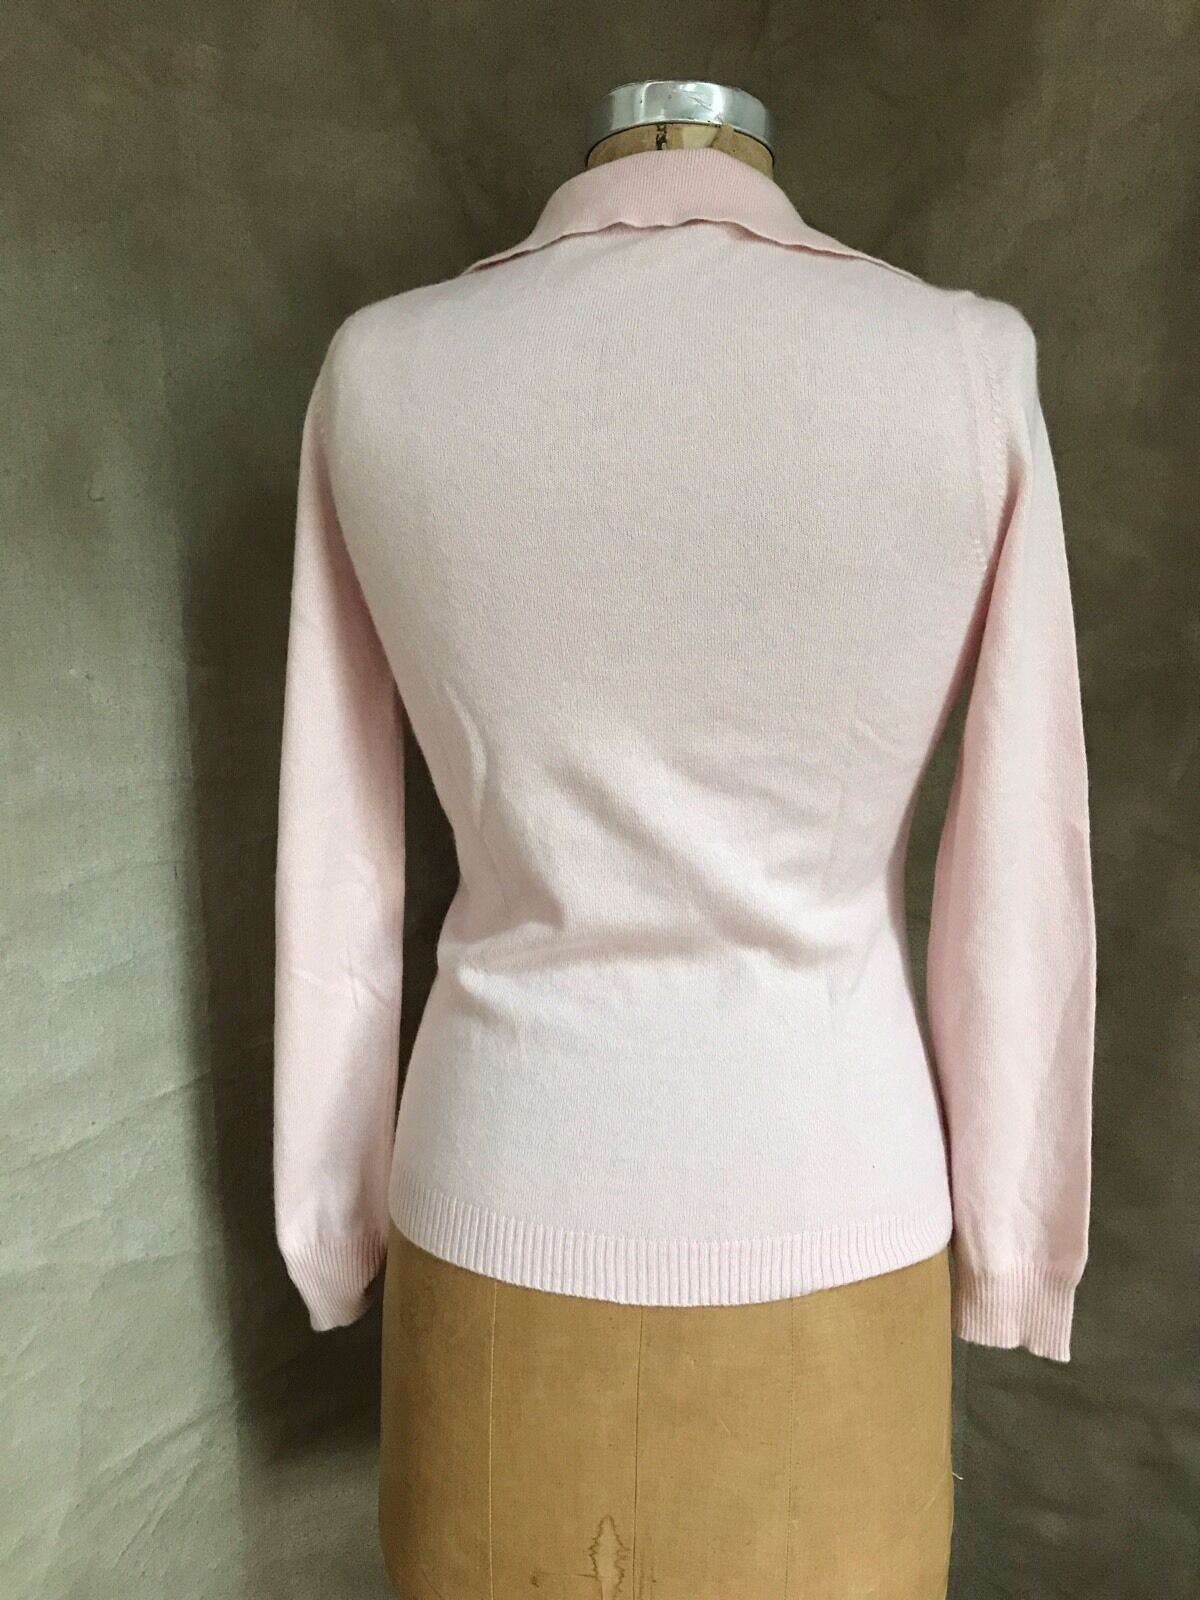 Women PINK CASHMERE Cotton Collar Sweater CRYSTAL… - image 4